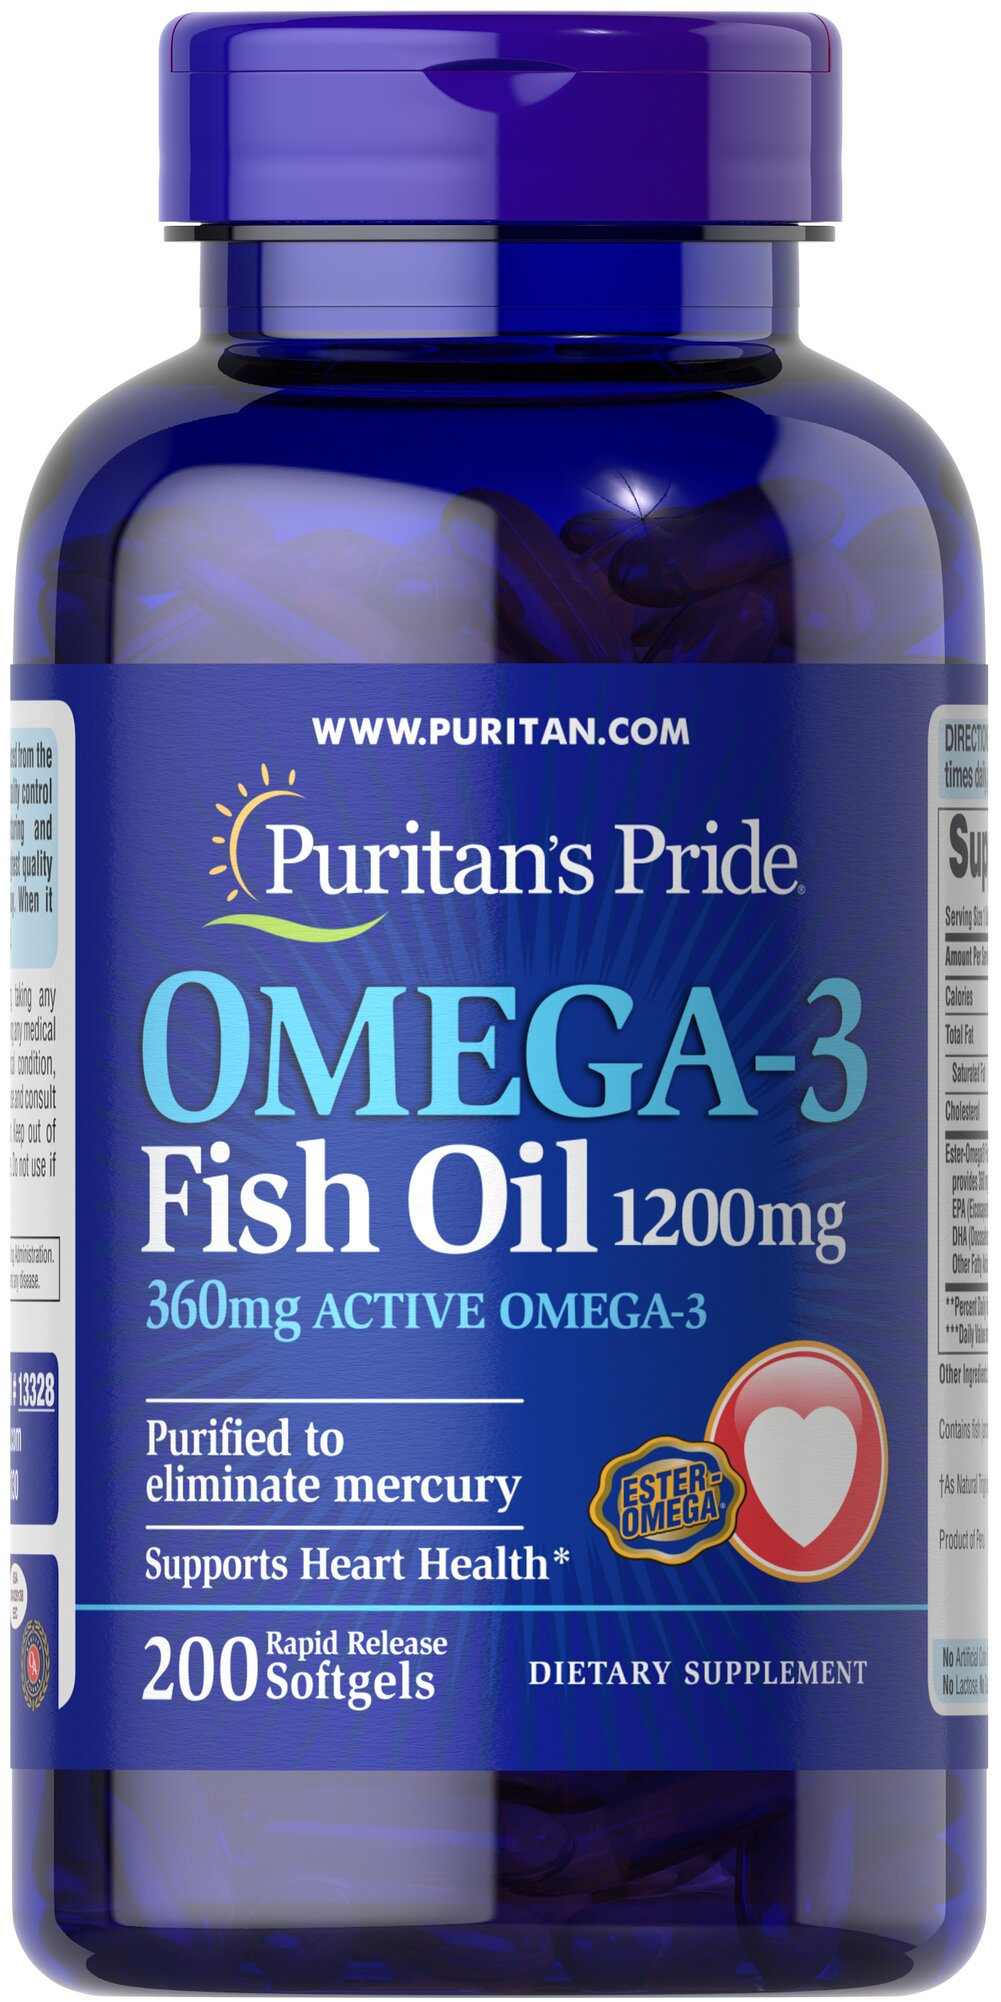 Omega-3 Fish Oil 1200 mg (360 mg Active Omega-3) <p>This Ester-Omega® Fish Oil provides 360mg of total omega-3 fatty acids, comprising of EPA, DHA and other fatty acids. EPA and DHA fatty acids support heart health.** Purified to eliminate mercury. Rapid release softgels.</p> 200 Softgels 1200 mg $21.49